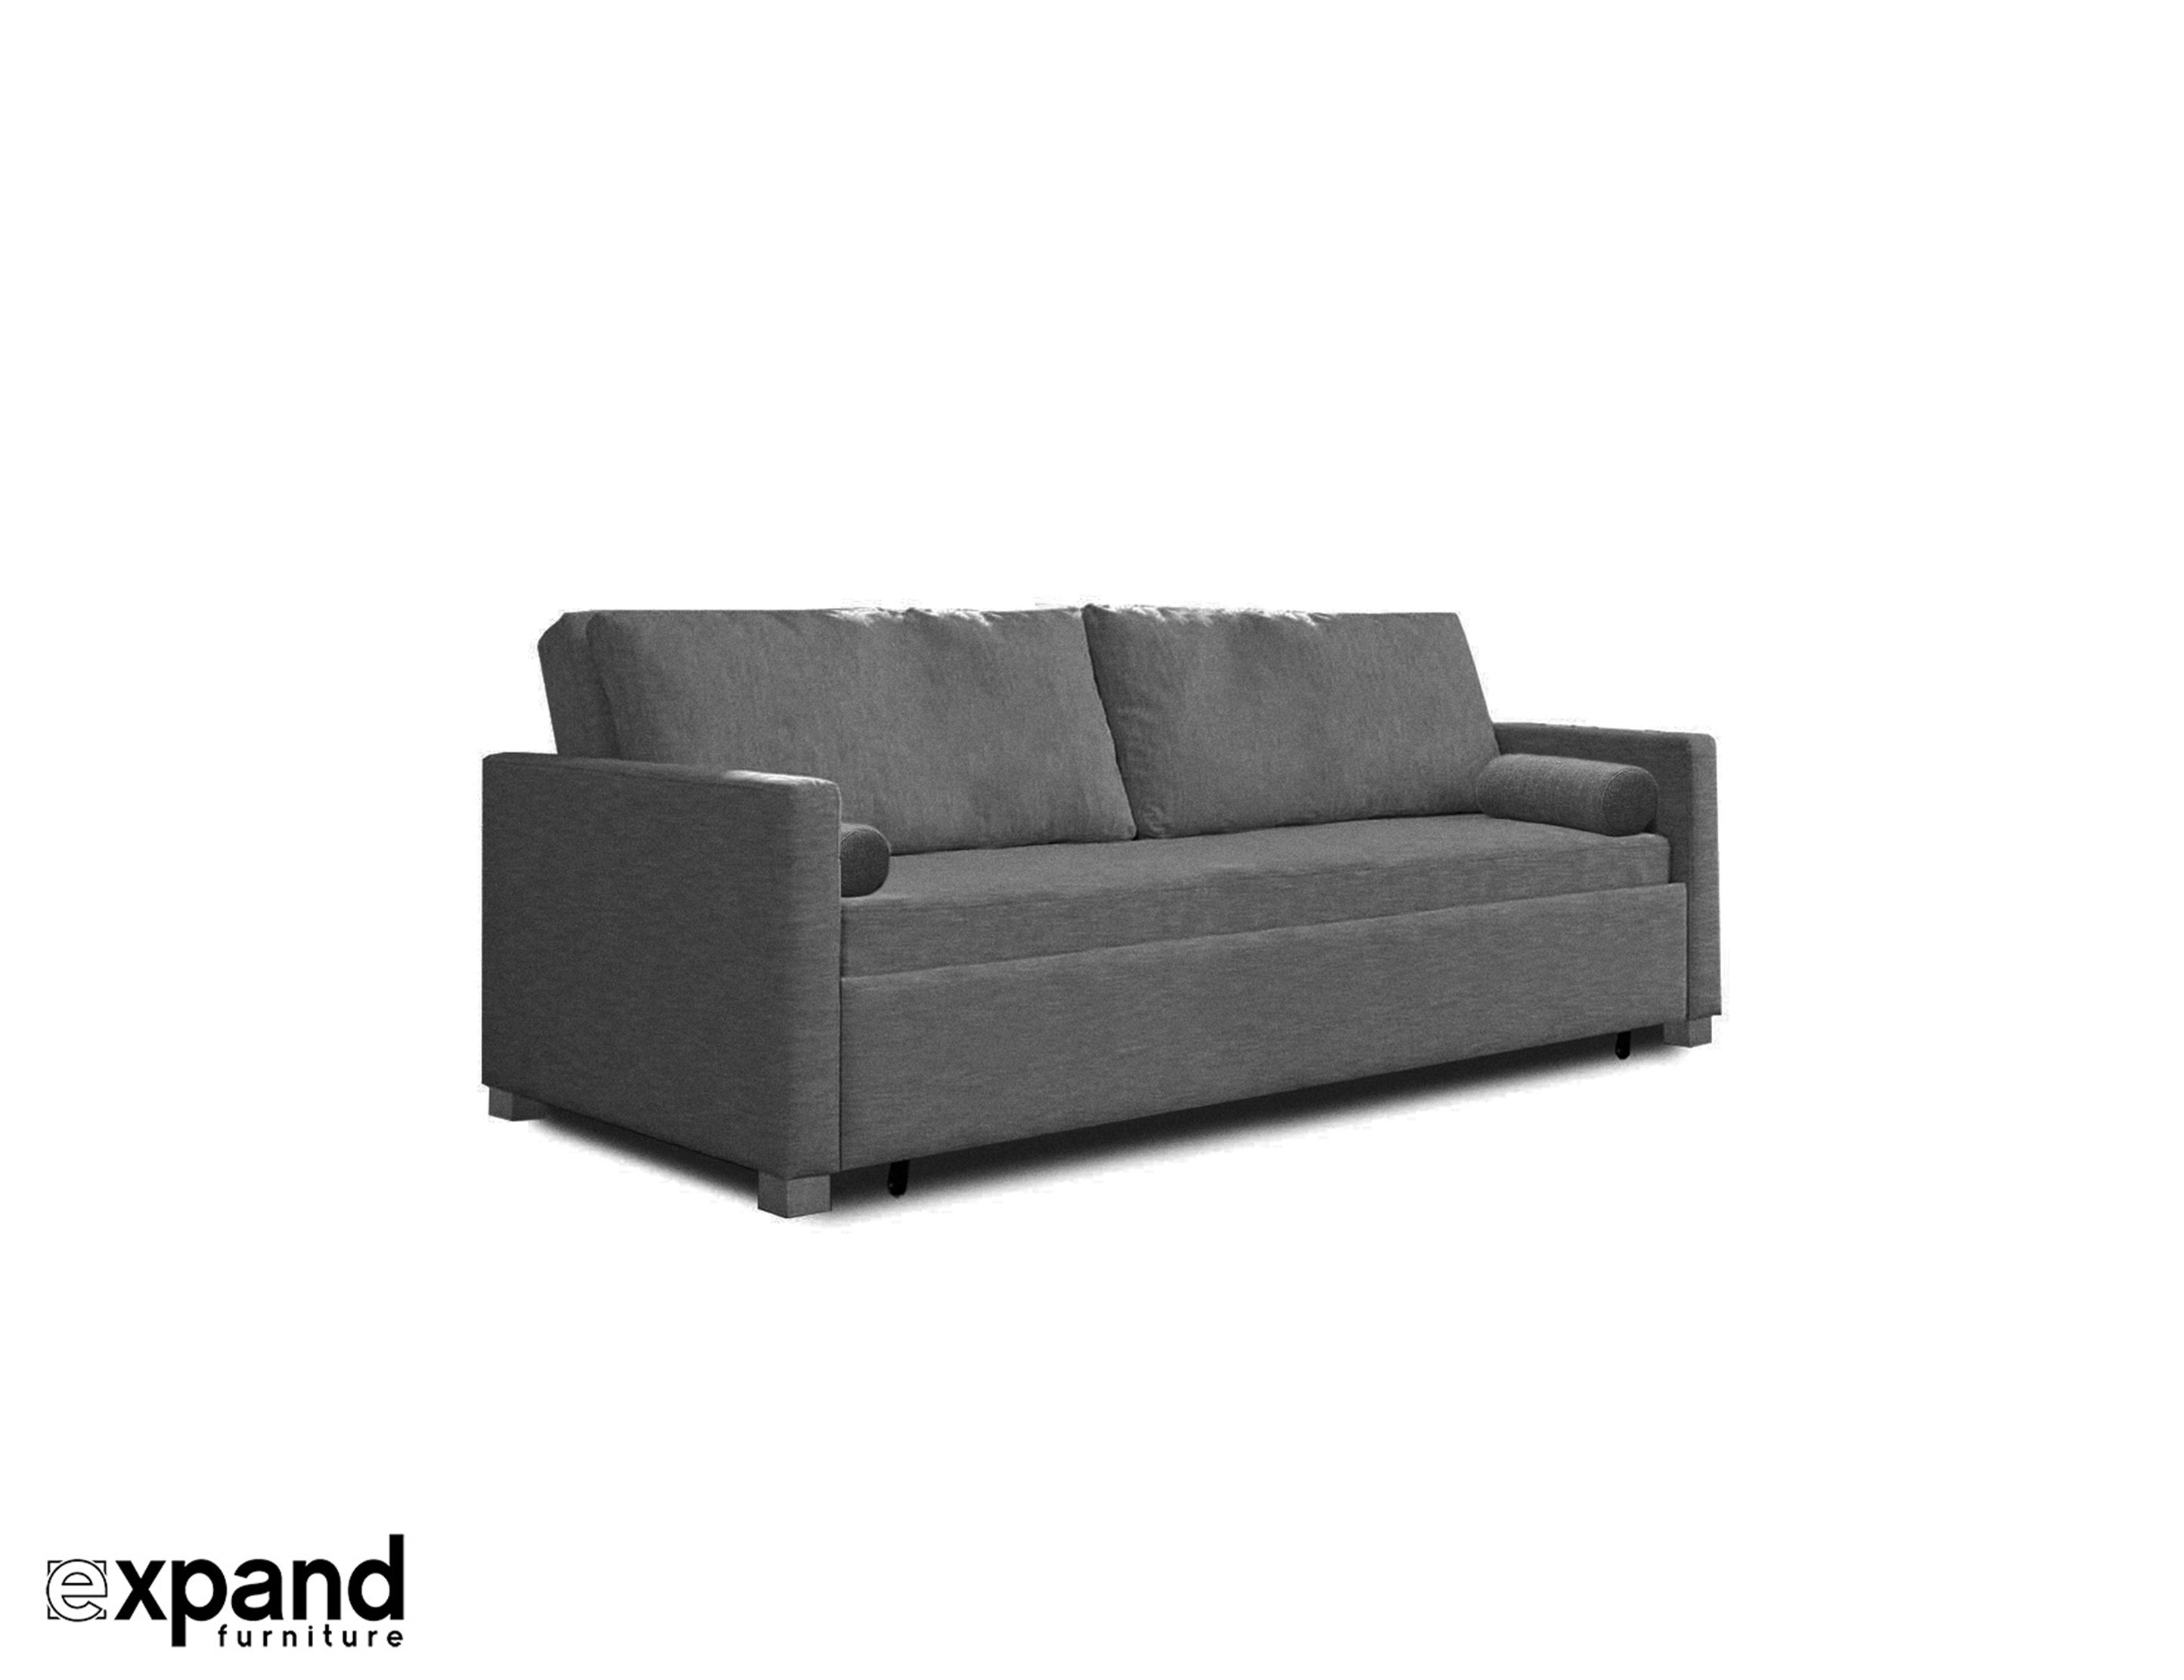 Trend King Furniture Sofa Beds 44 For Your Single Sofa Bed Chairs With Regard To Cheap Single Sofa Bed Chairs (Image 15 of 15)